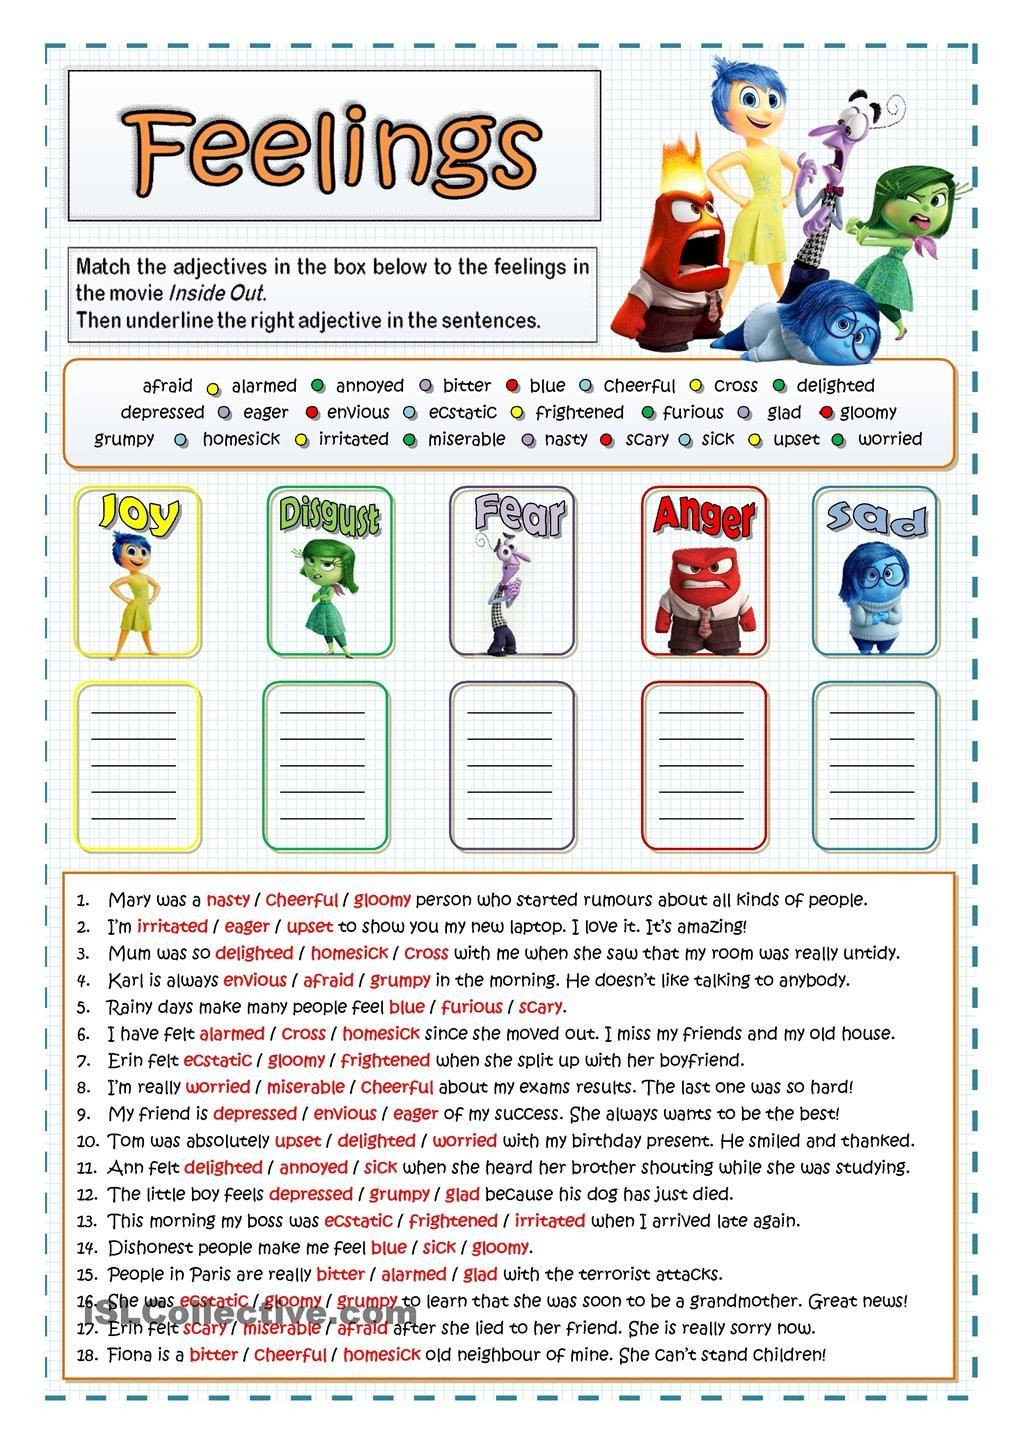 Feelings Worksheets for Adults Inside Out Feelings and Emotions